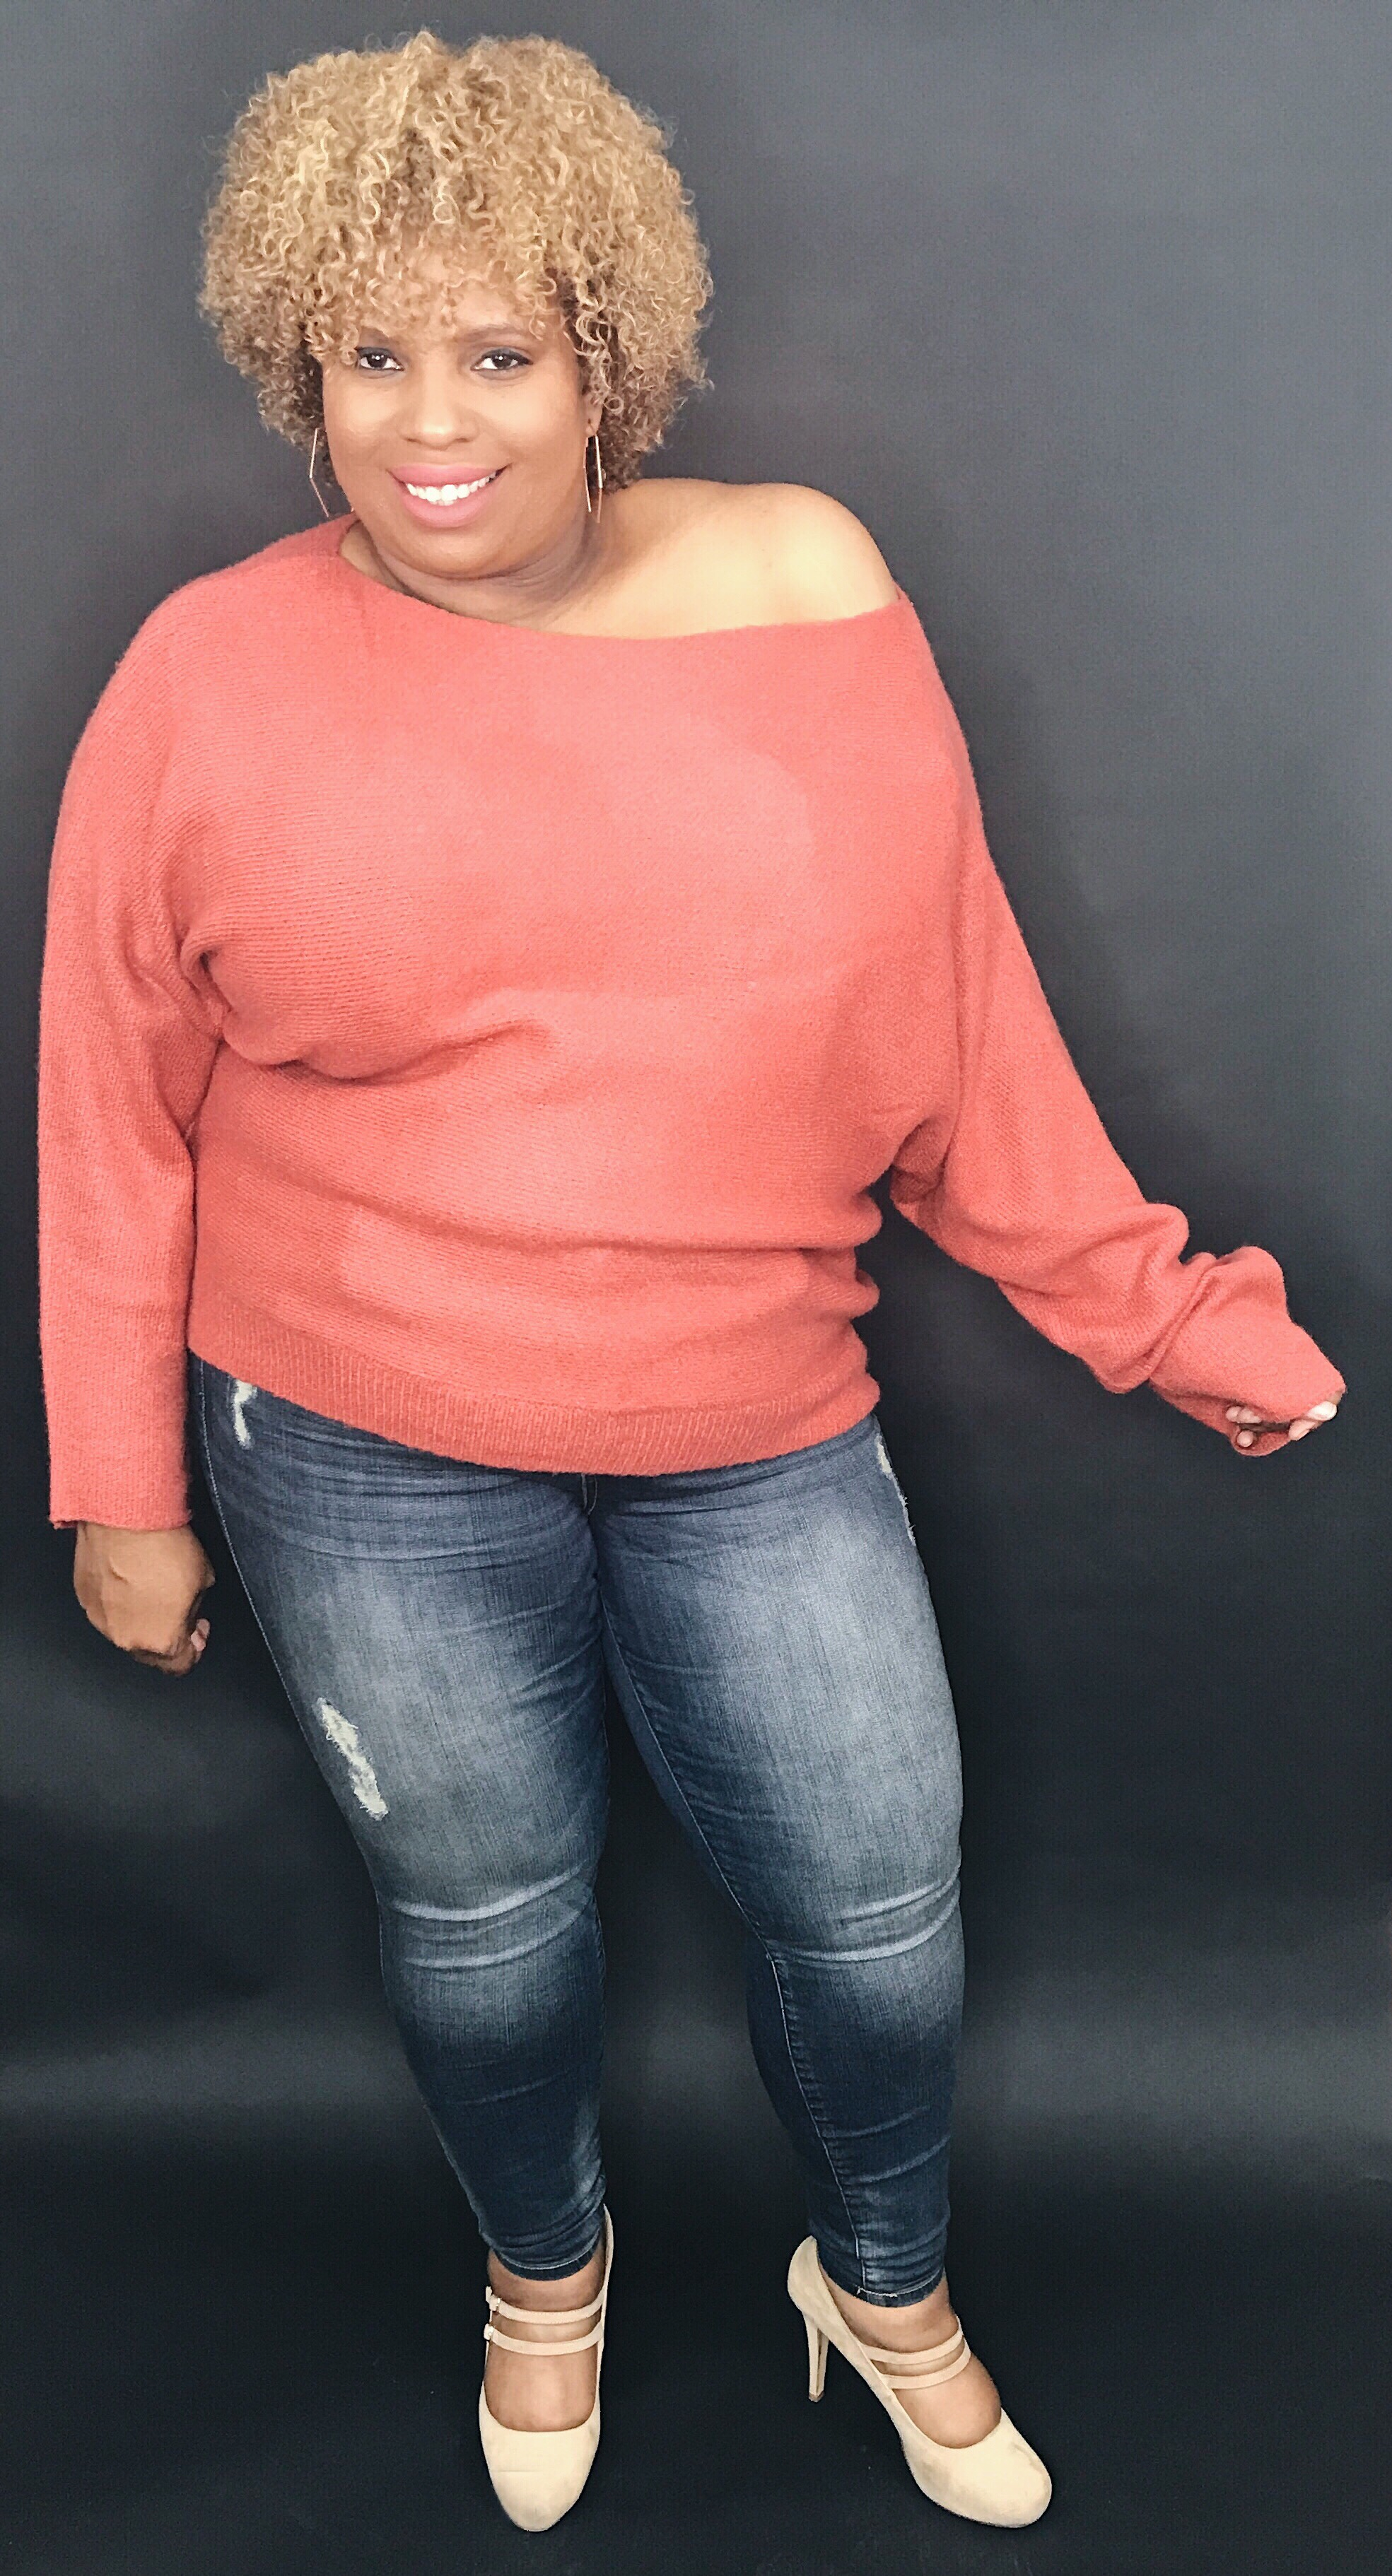 Pink sweater forever 21, winter wardrobe, natural hair style